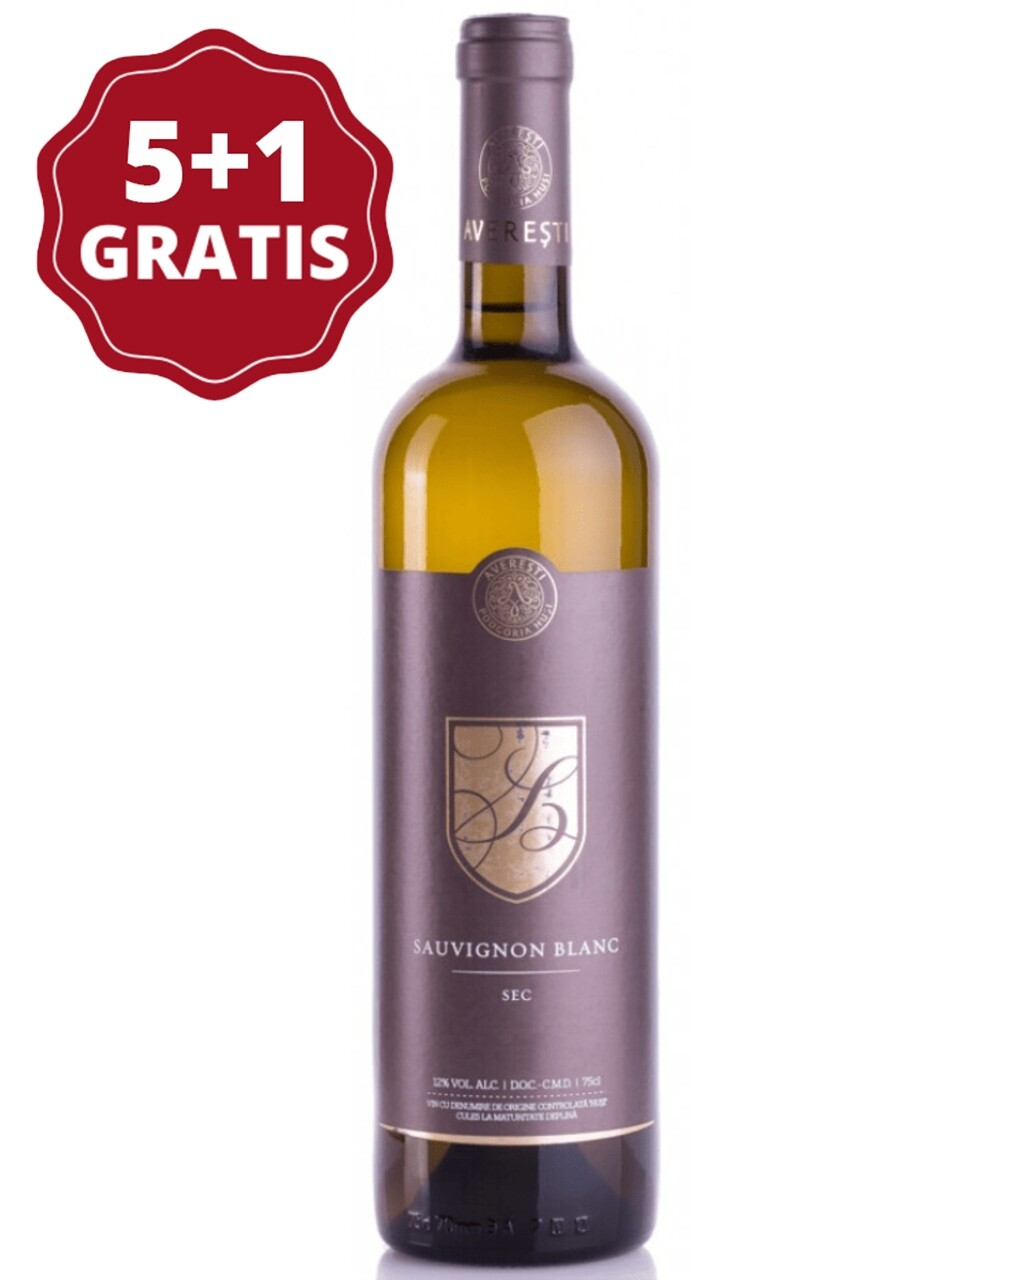 Averesti Regala Sauvignon Blanc 5+1